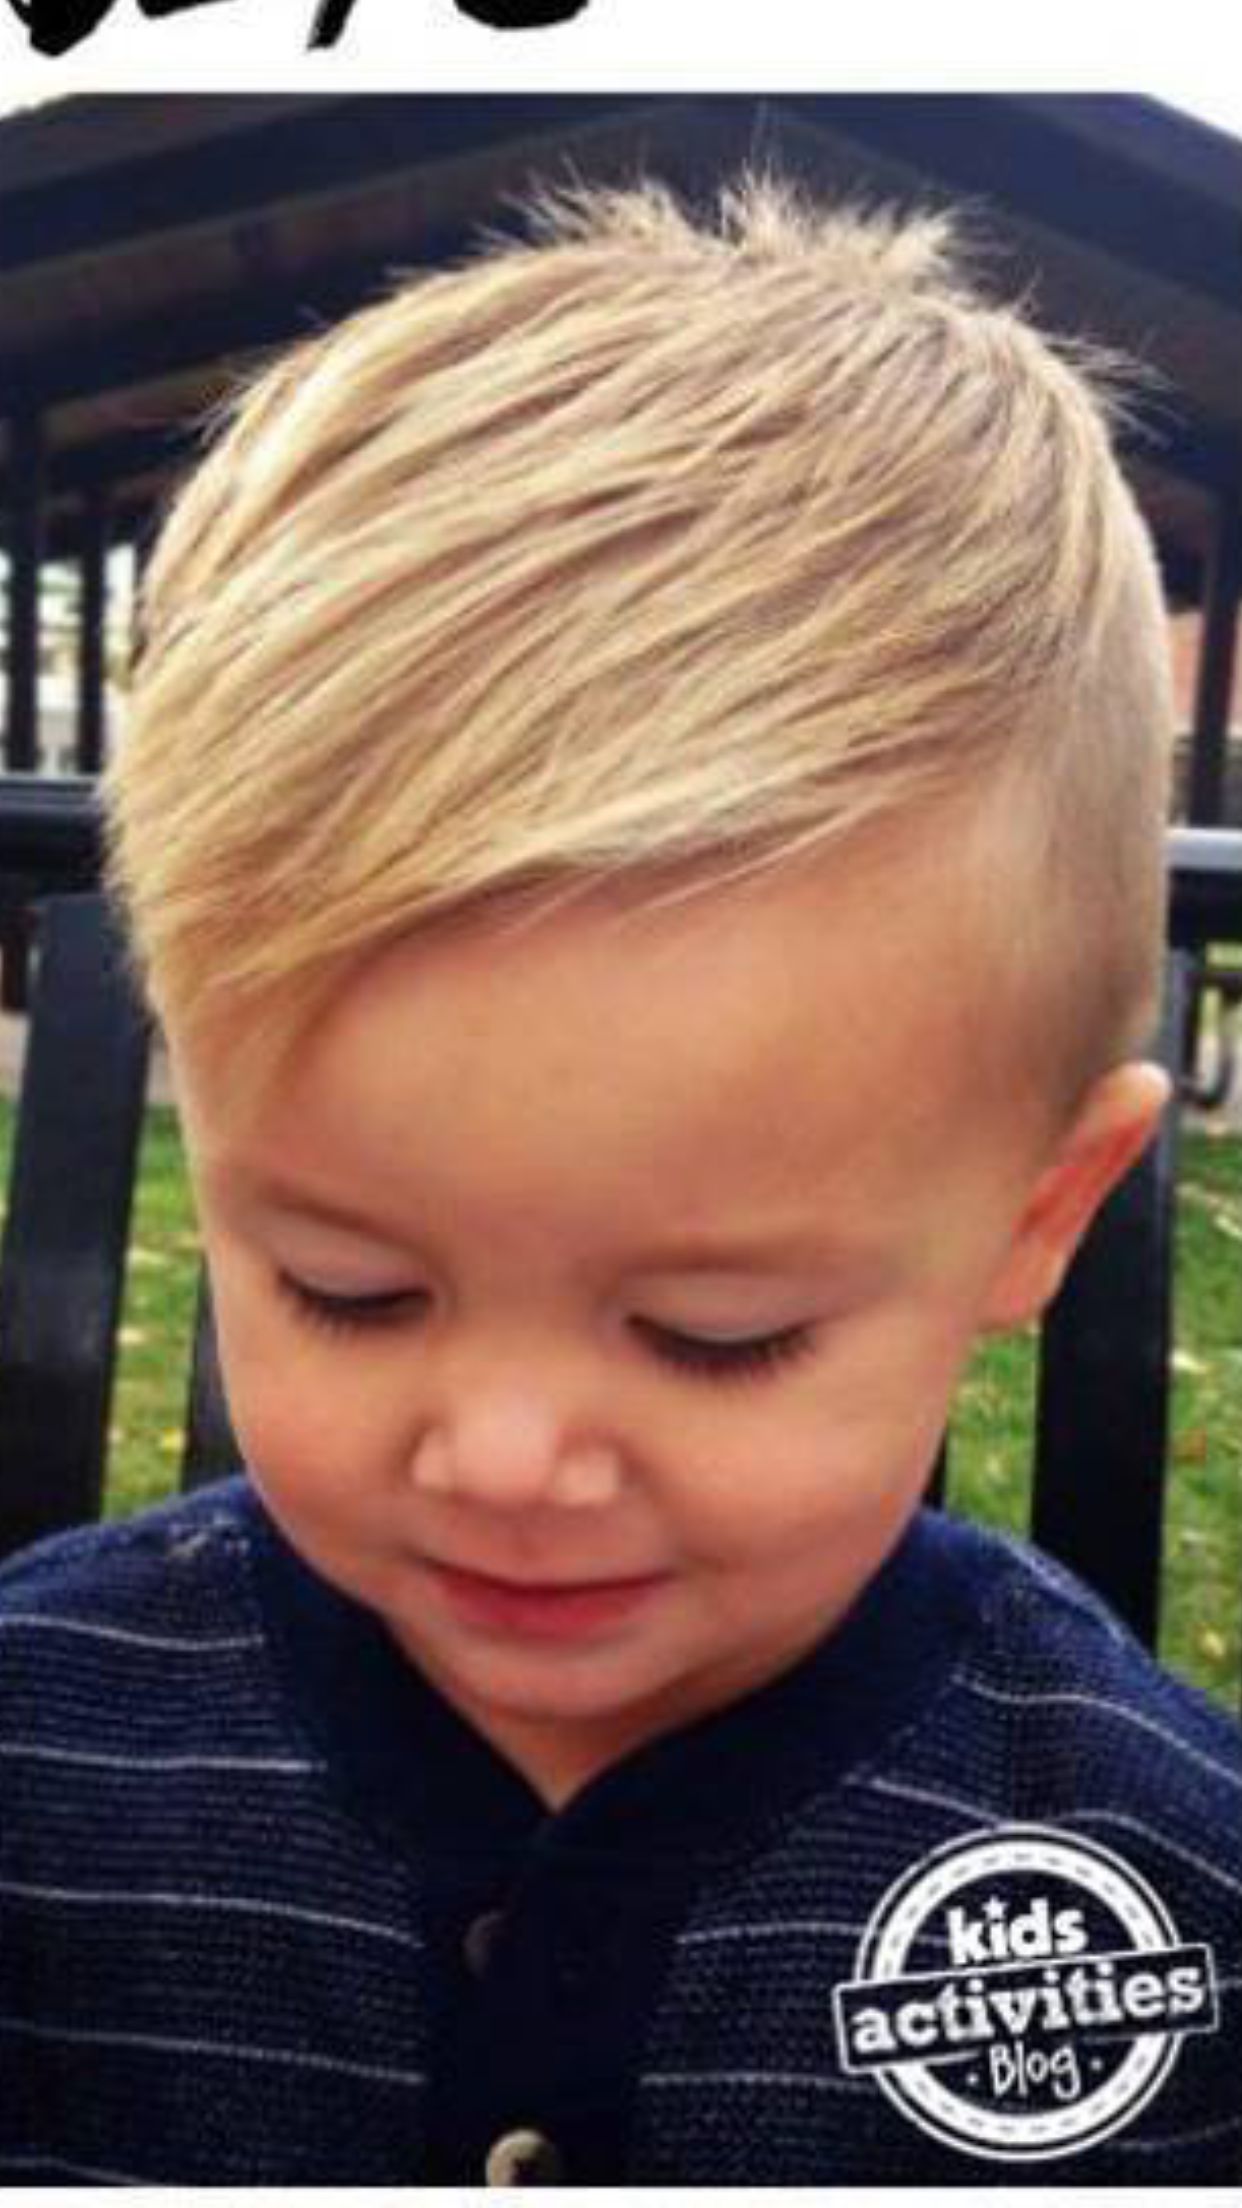 Haircut for boys png time for maxus first haircut  for baby makers i love this